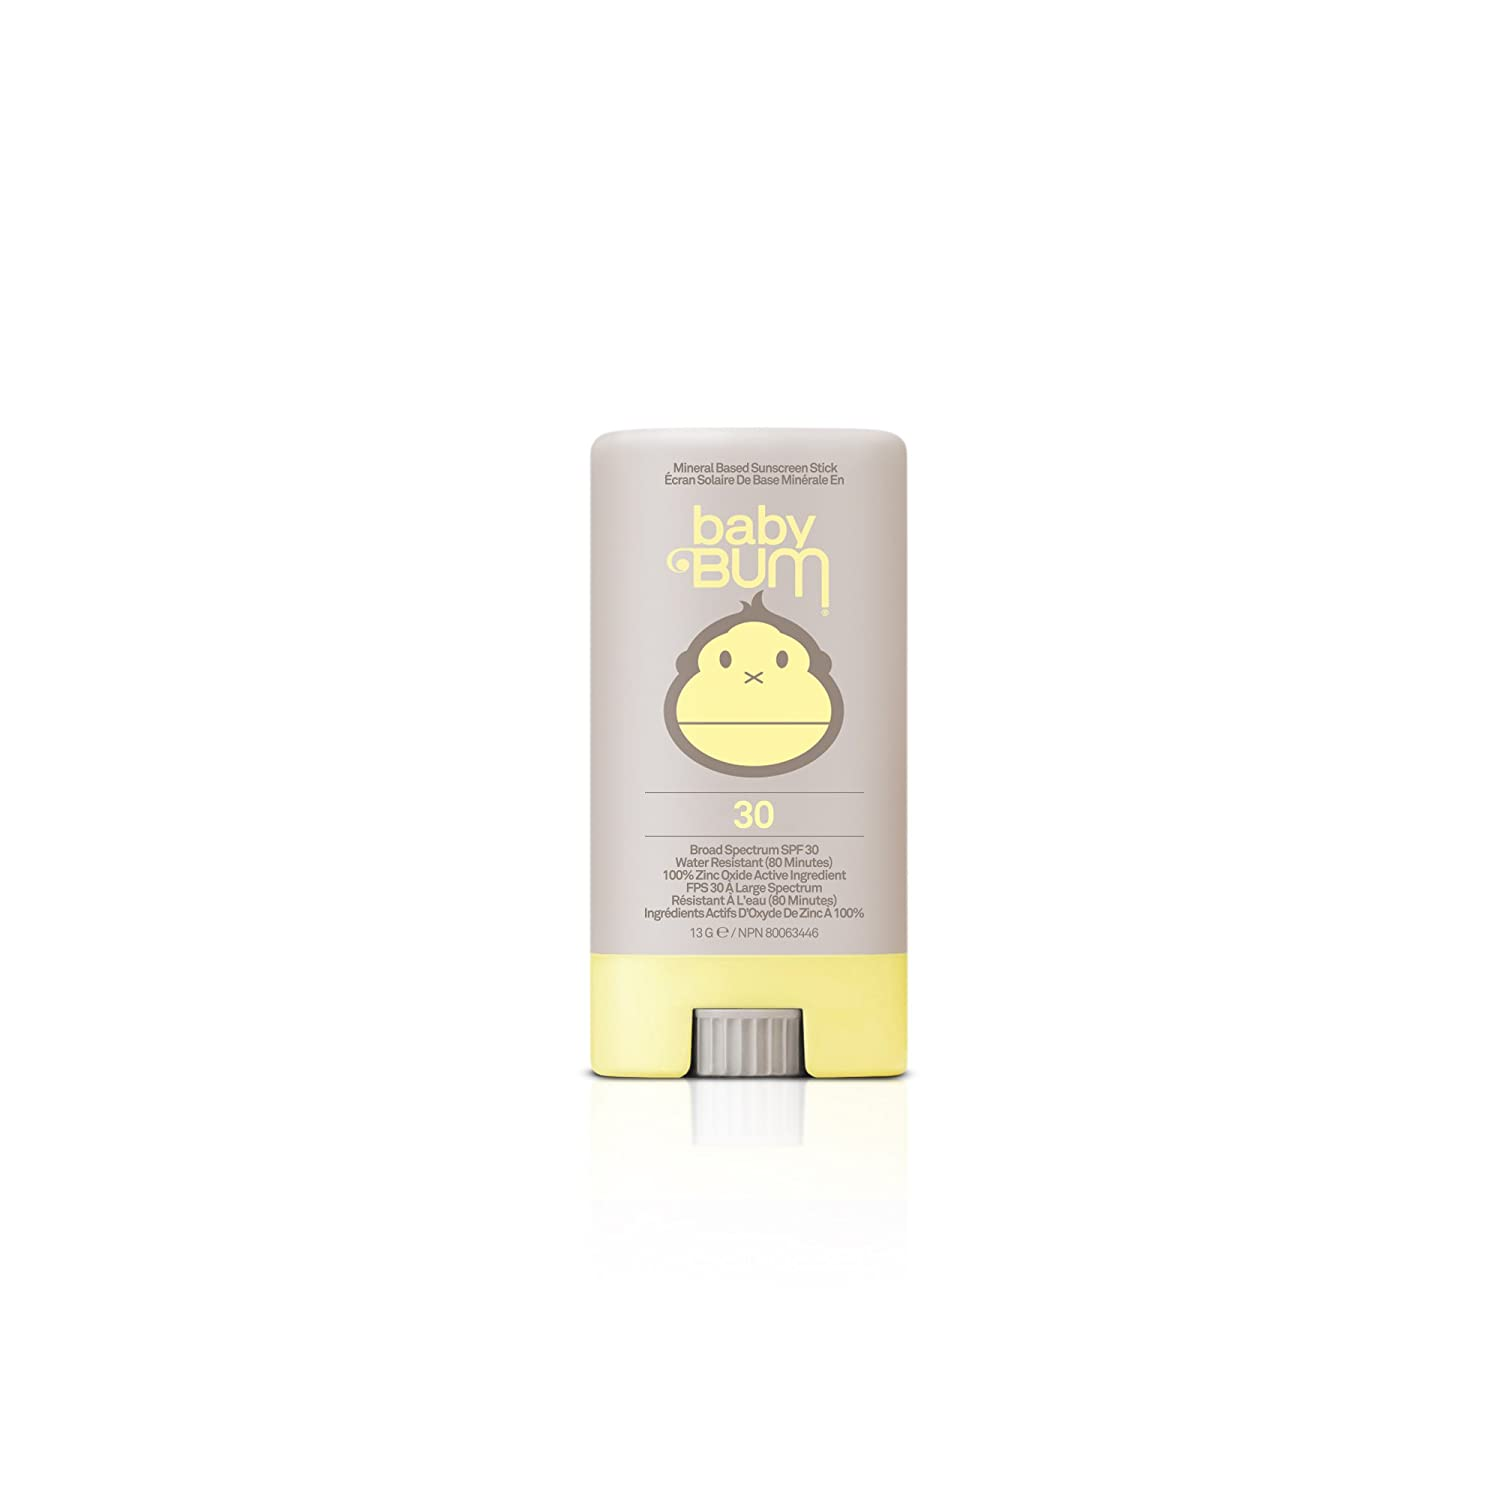 Sun Bum Baby Bum Mineral Based Moisturizing Sunscreen Lotion, SPF 30, 88 mL Tube, 1 Count, Broad Spectrum UVA/UVB Protection, Natural, Hypoallergenic, Paraben Free, Pediatrician Approved